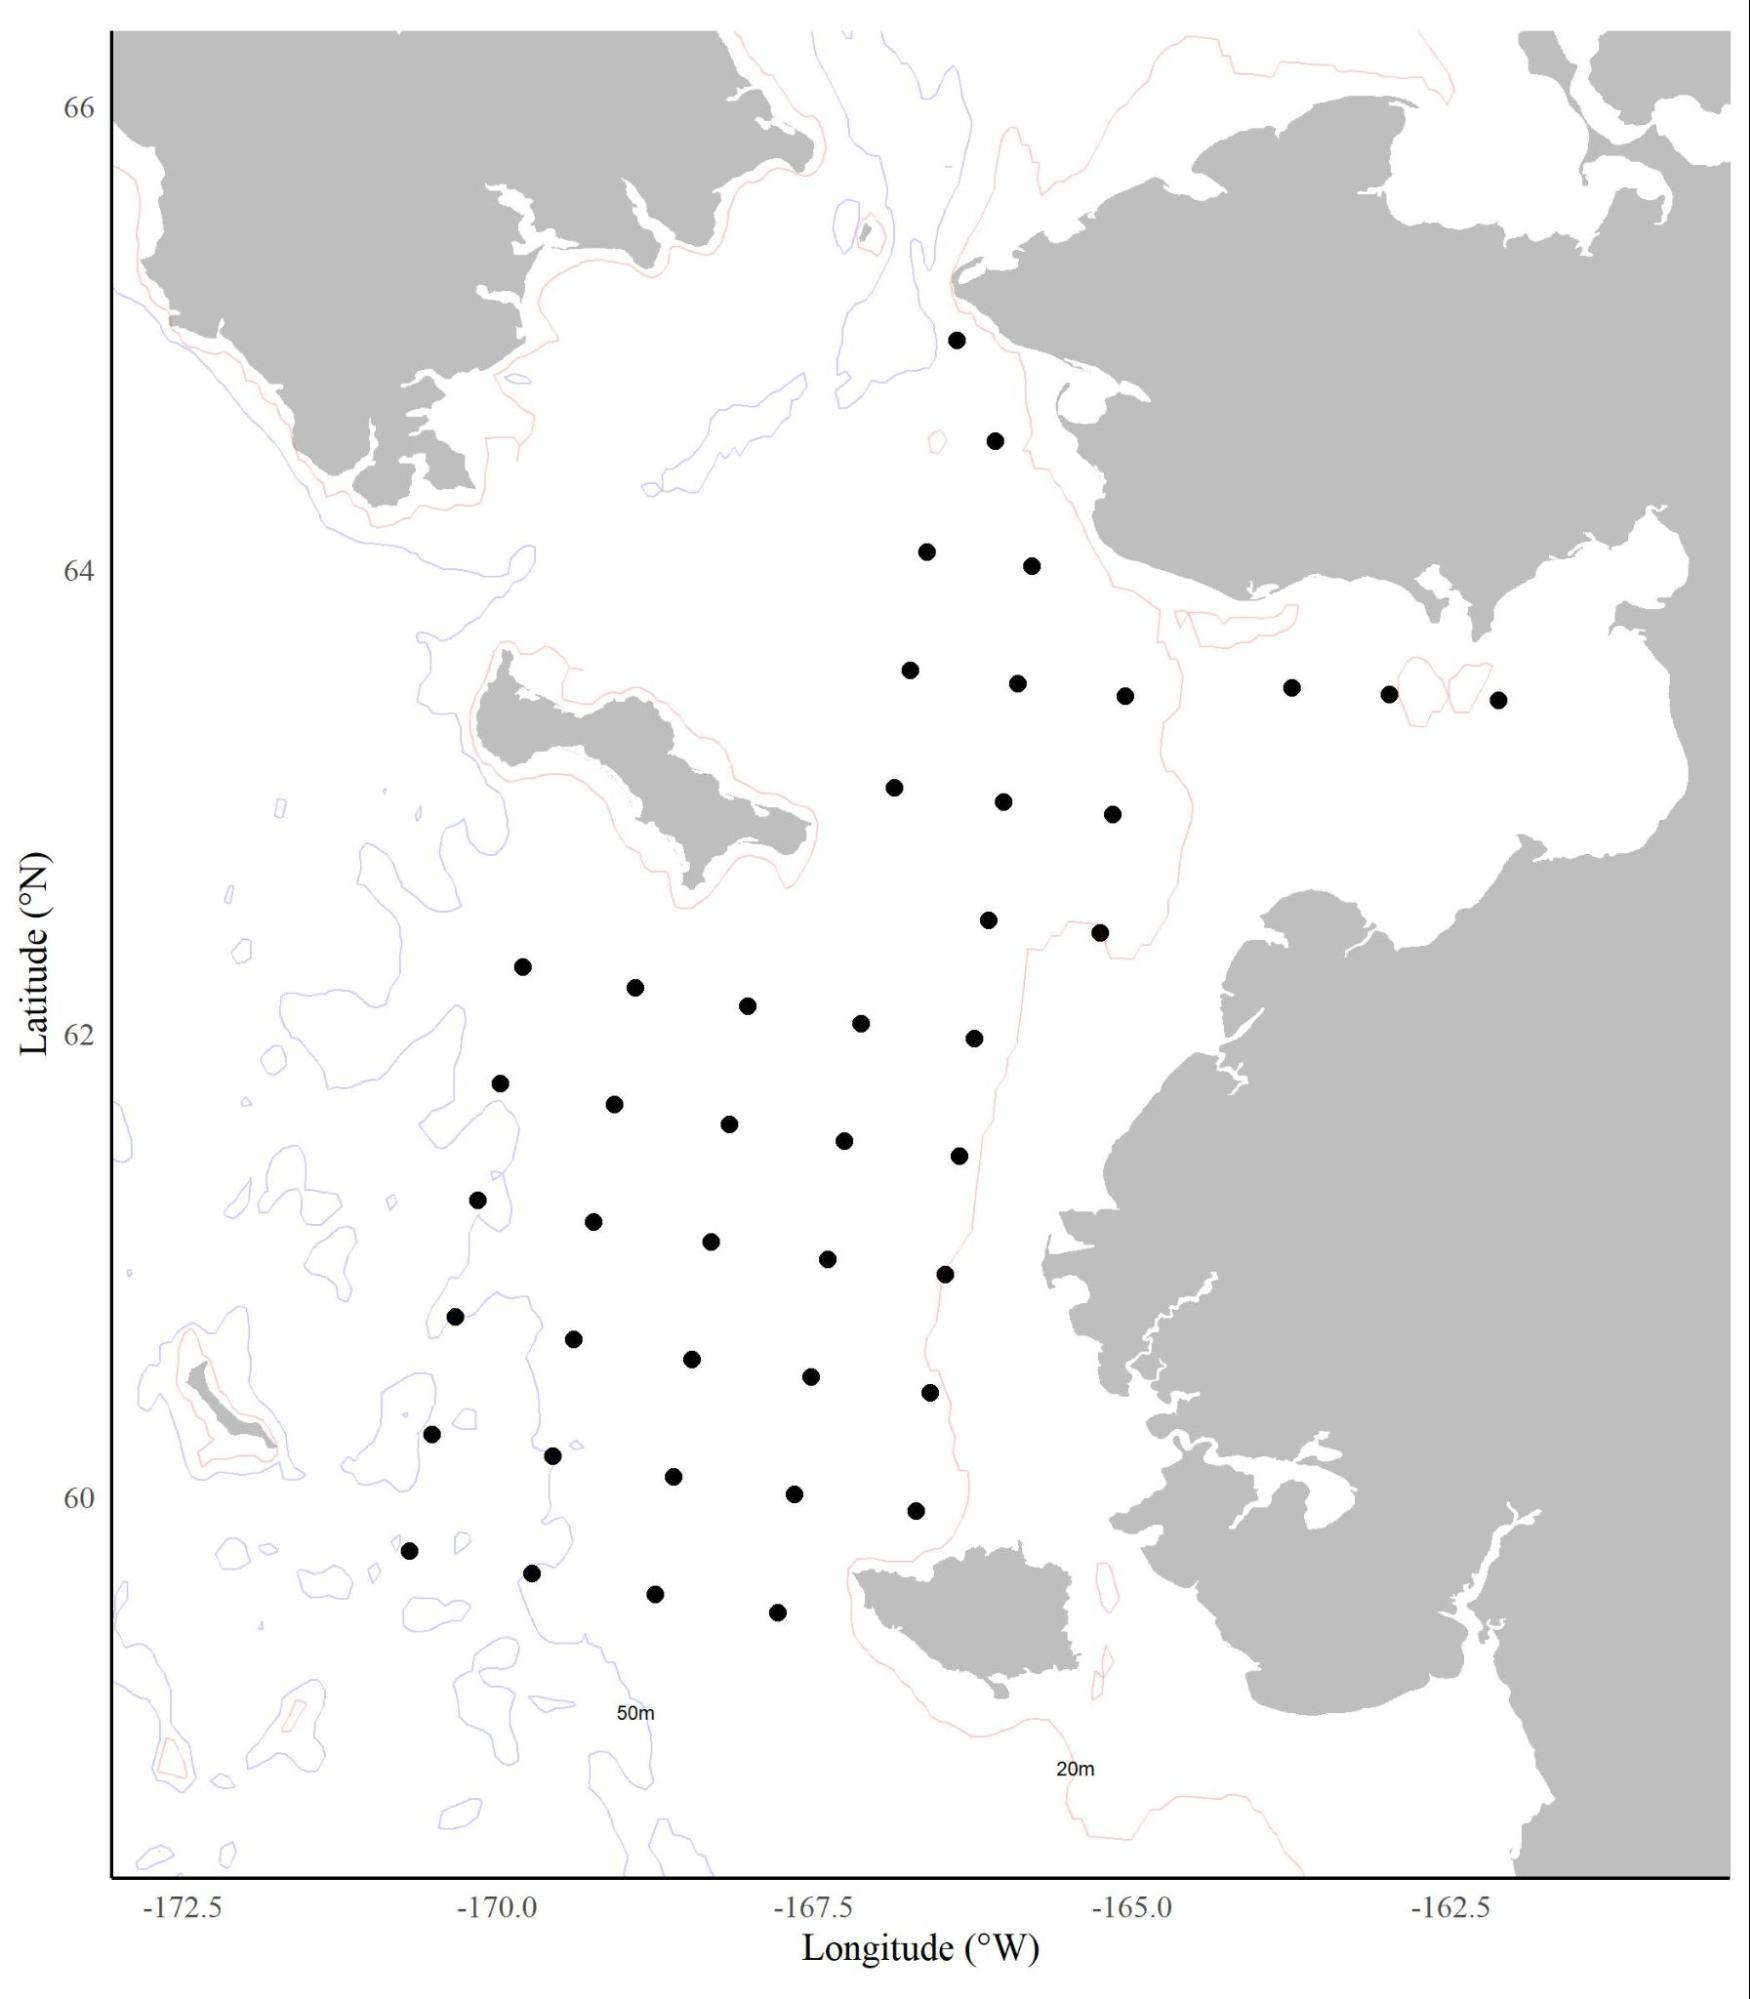 Map of station locations in the norther Bering Sea.